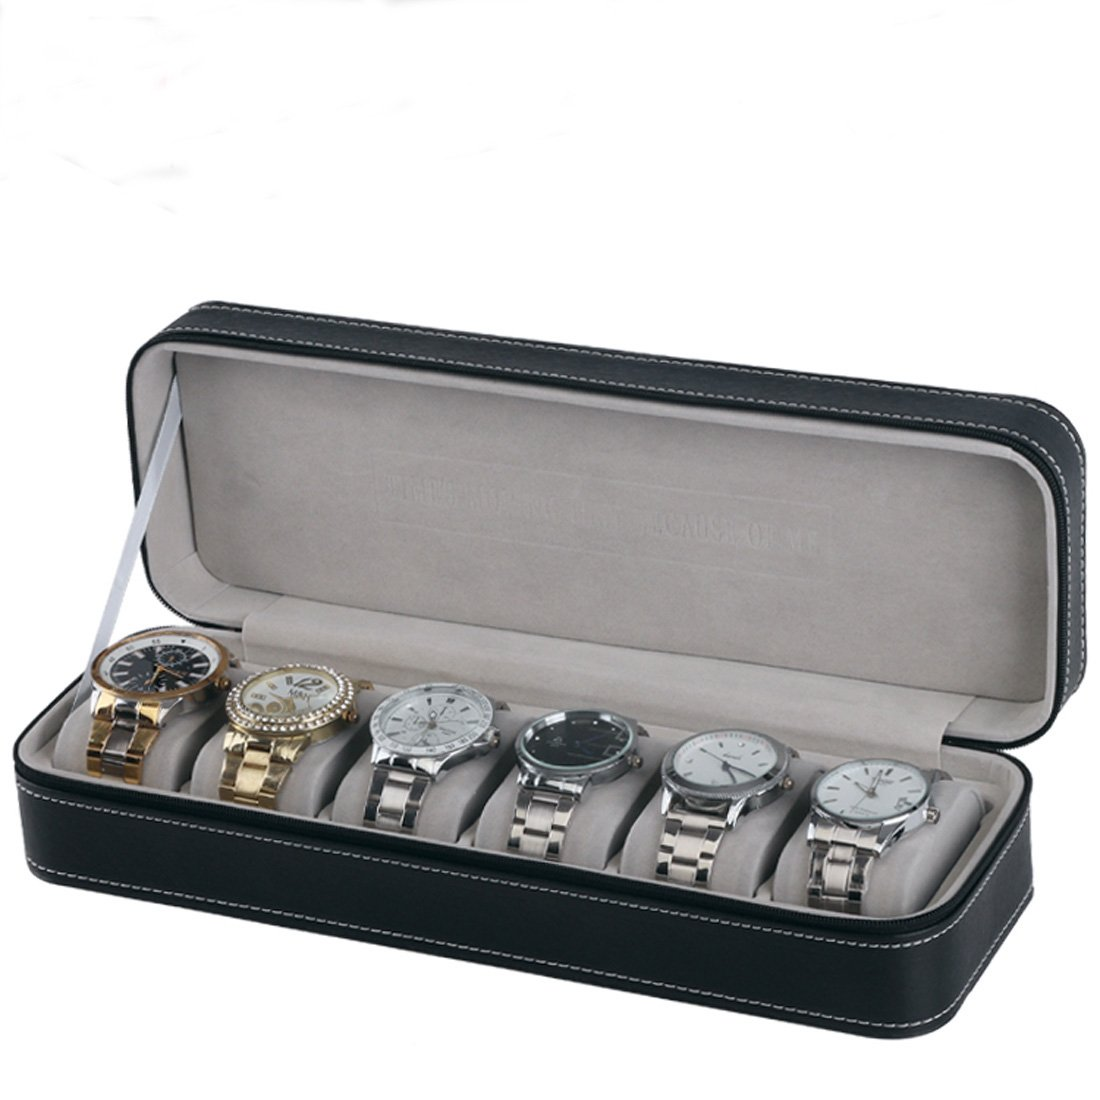 Homeater 6 Slot Watch Box Portable Travel Zipper Case Collector Storage Jewelry Storage Box(Black)